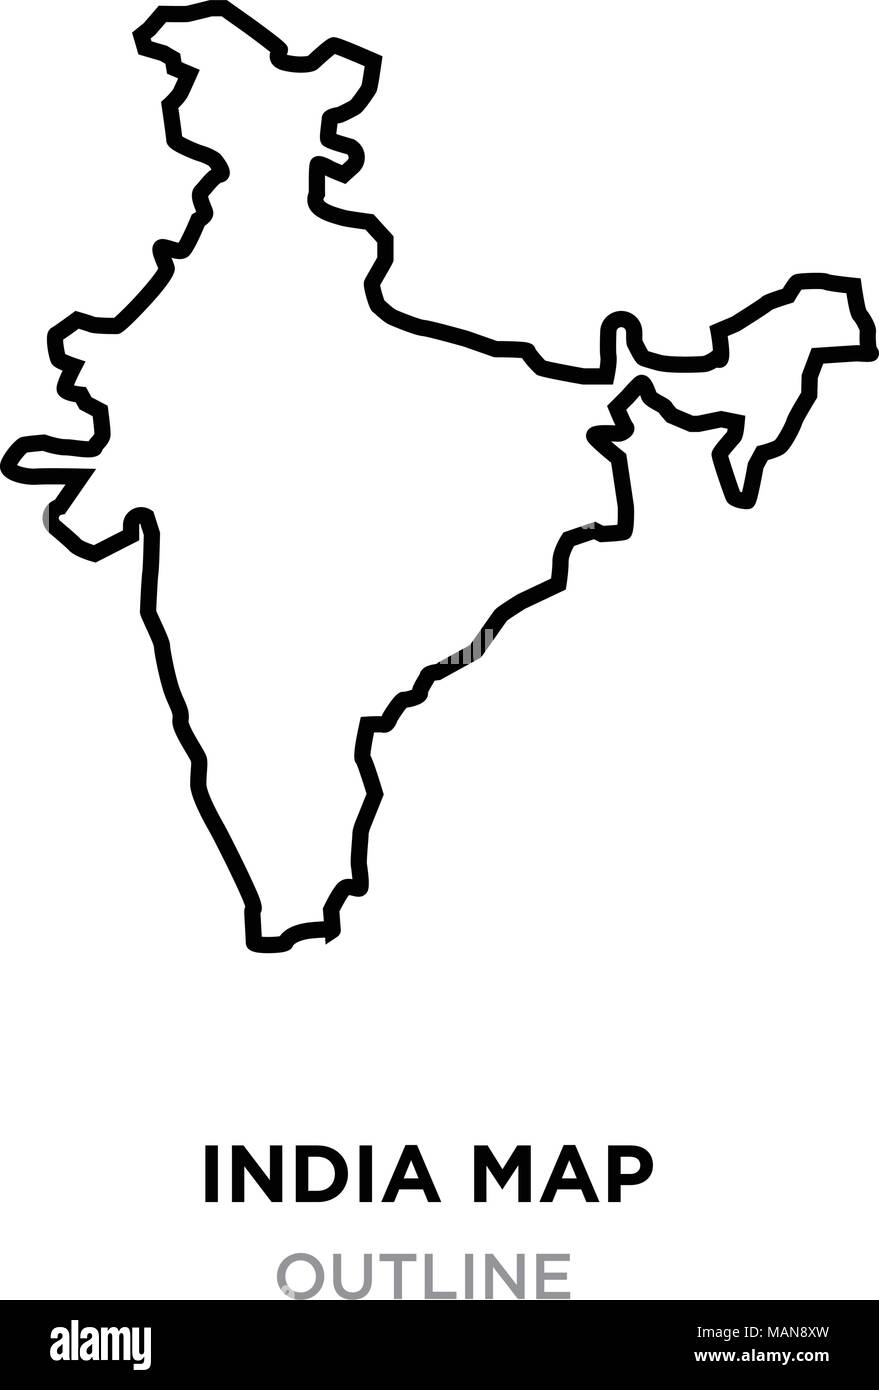 india map outline png on white background, vector